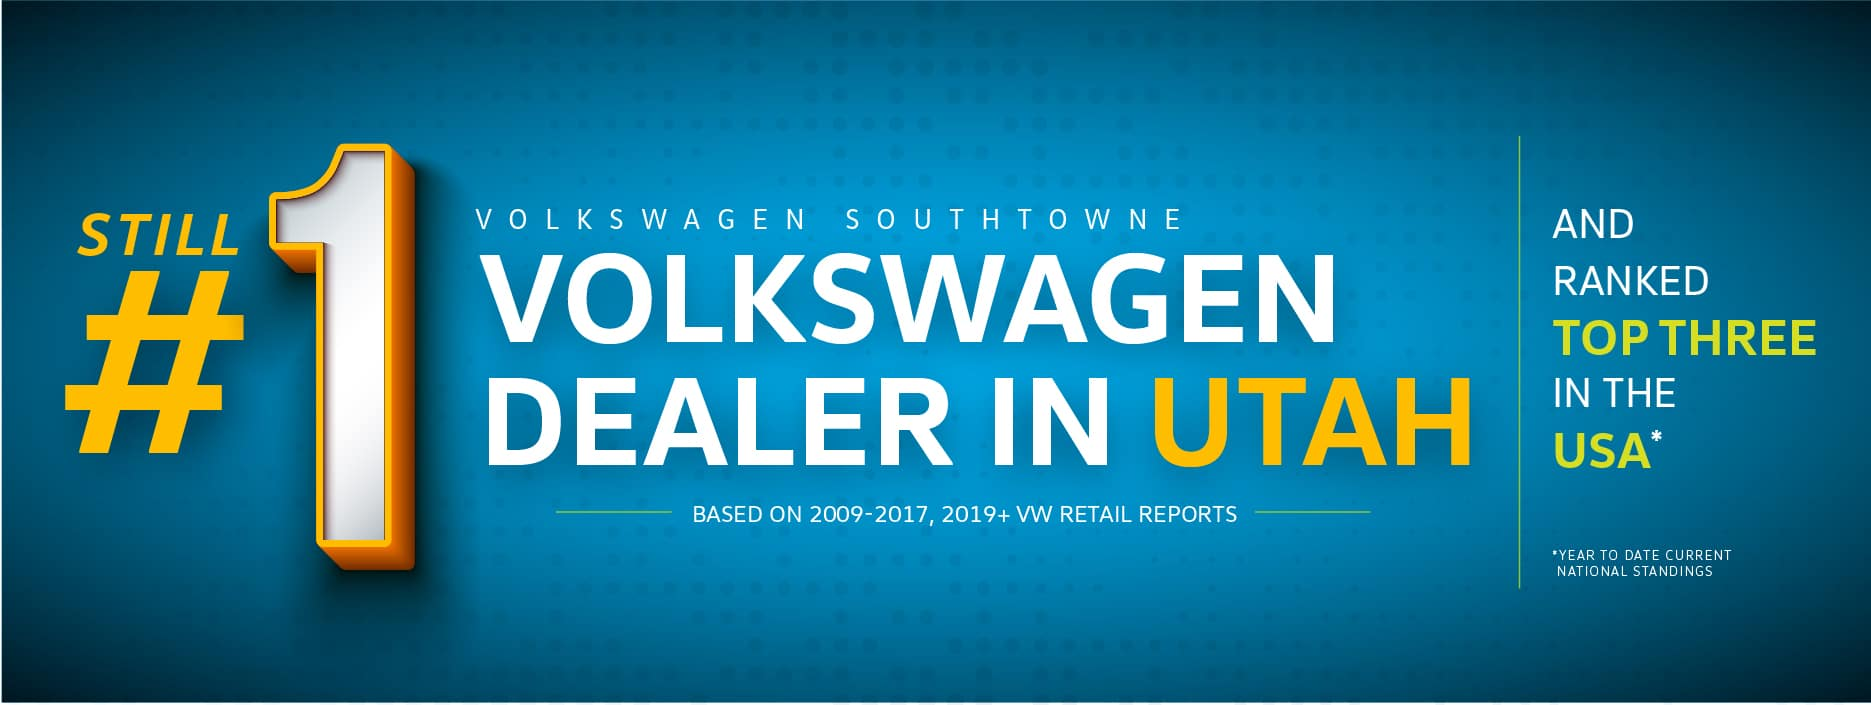 Volkswagen SouthTowne is once again the top VW dealer in Utah